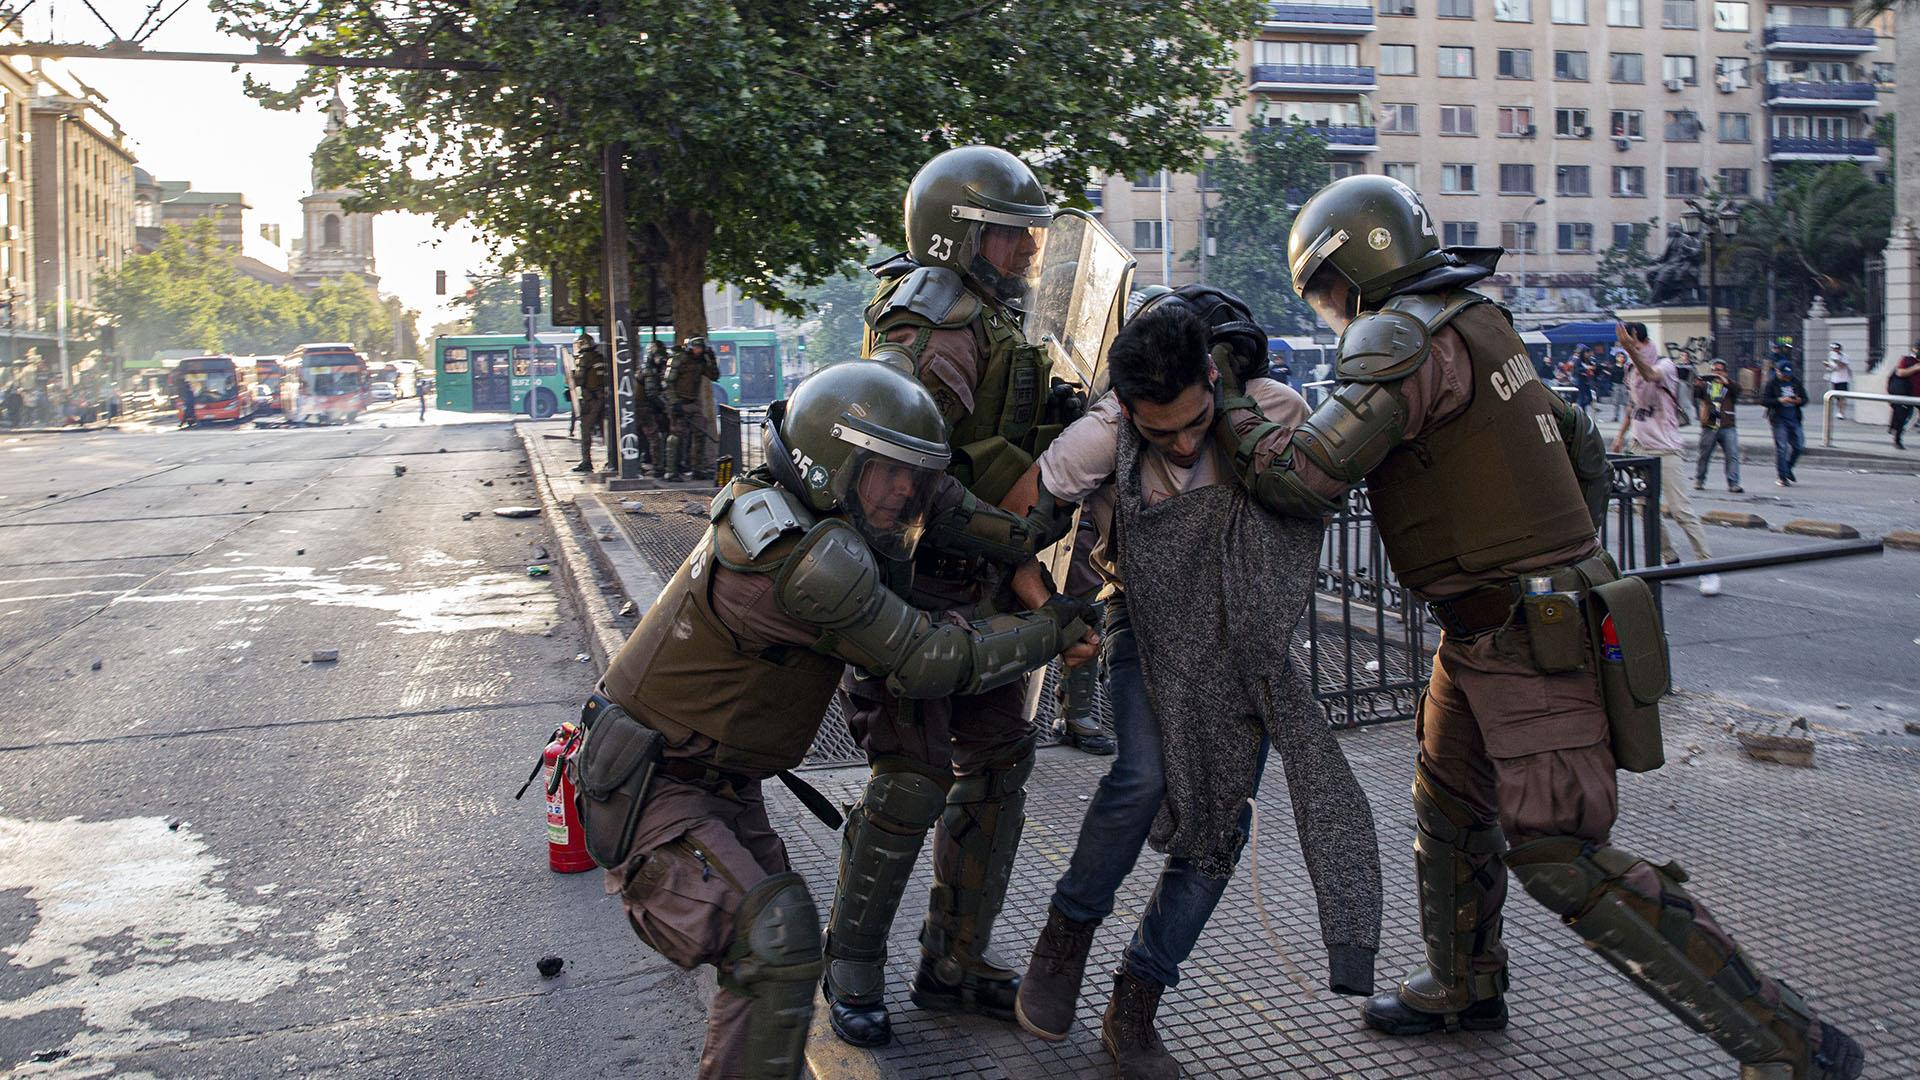 Riots in Chile leave at least three dead, state of emergency declared